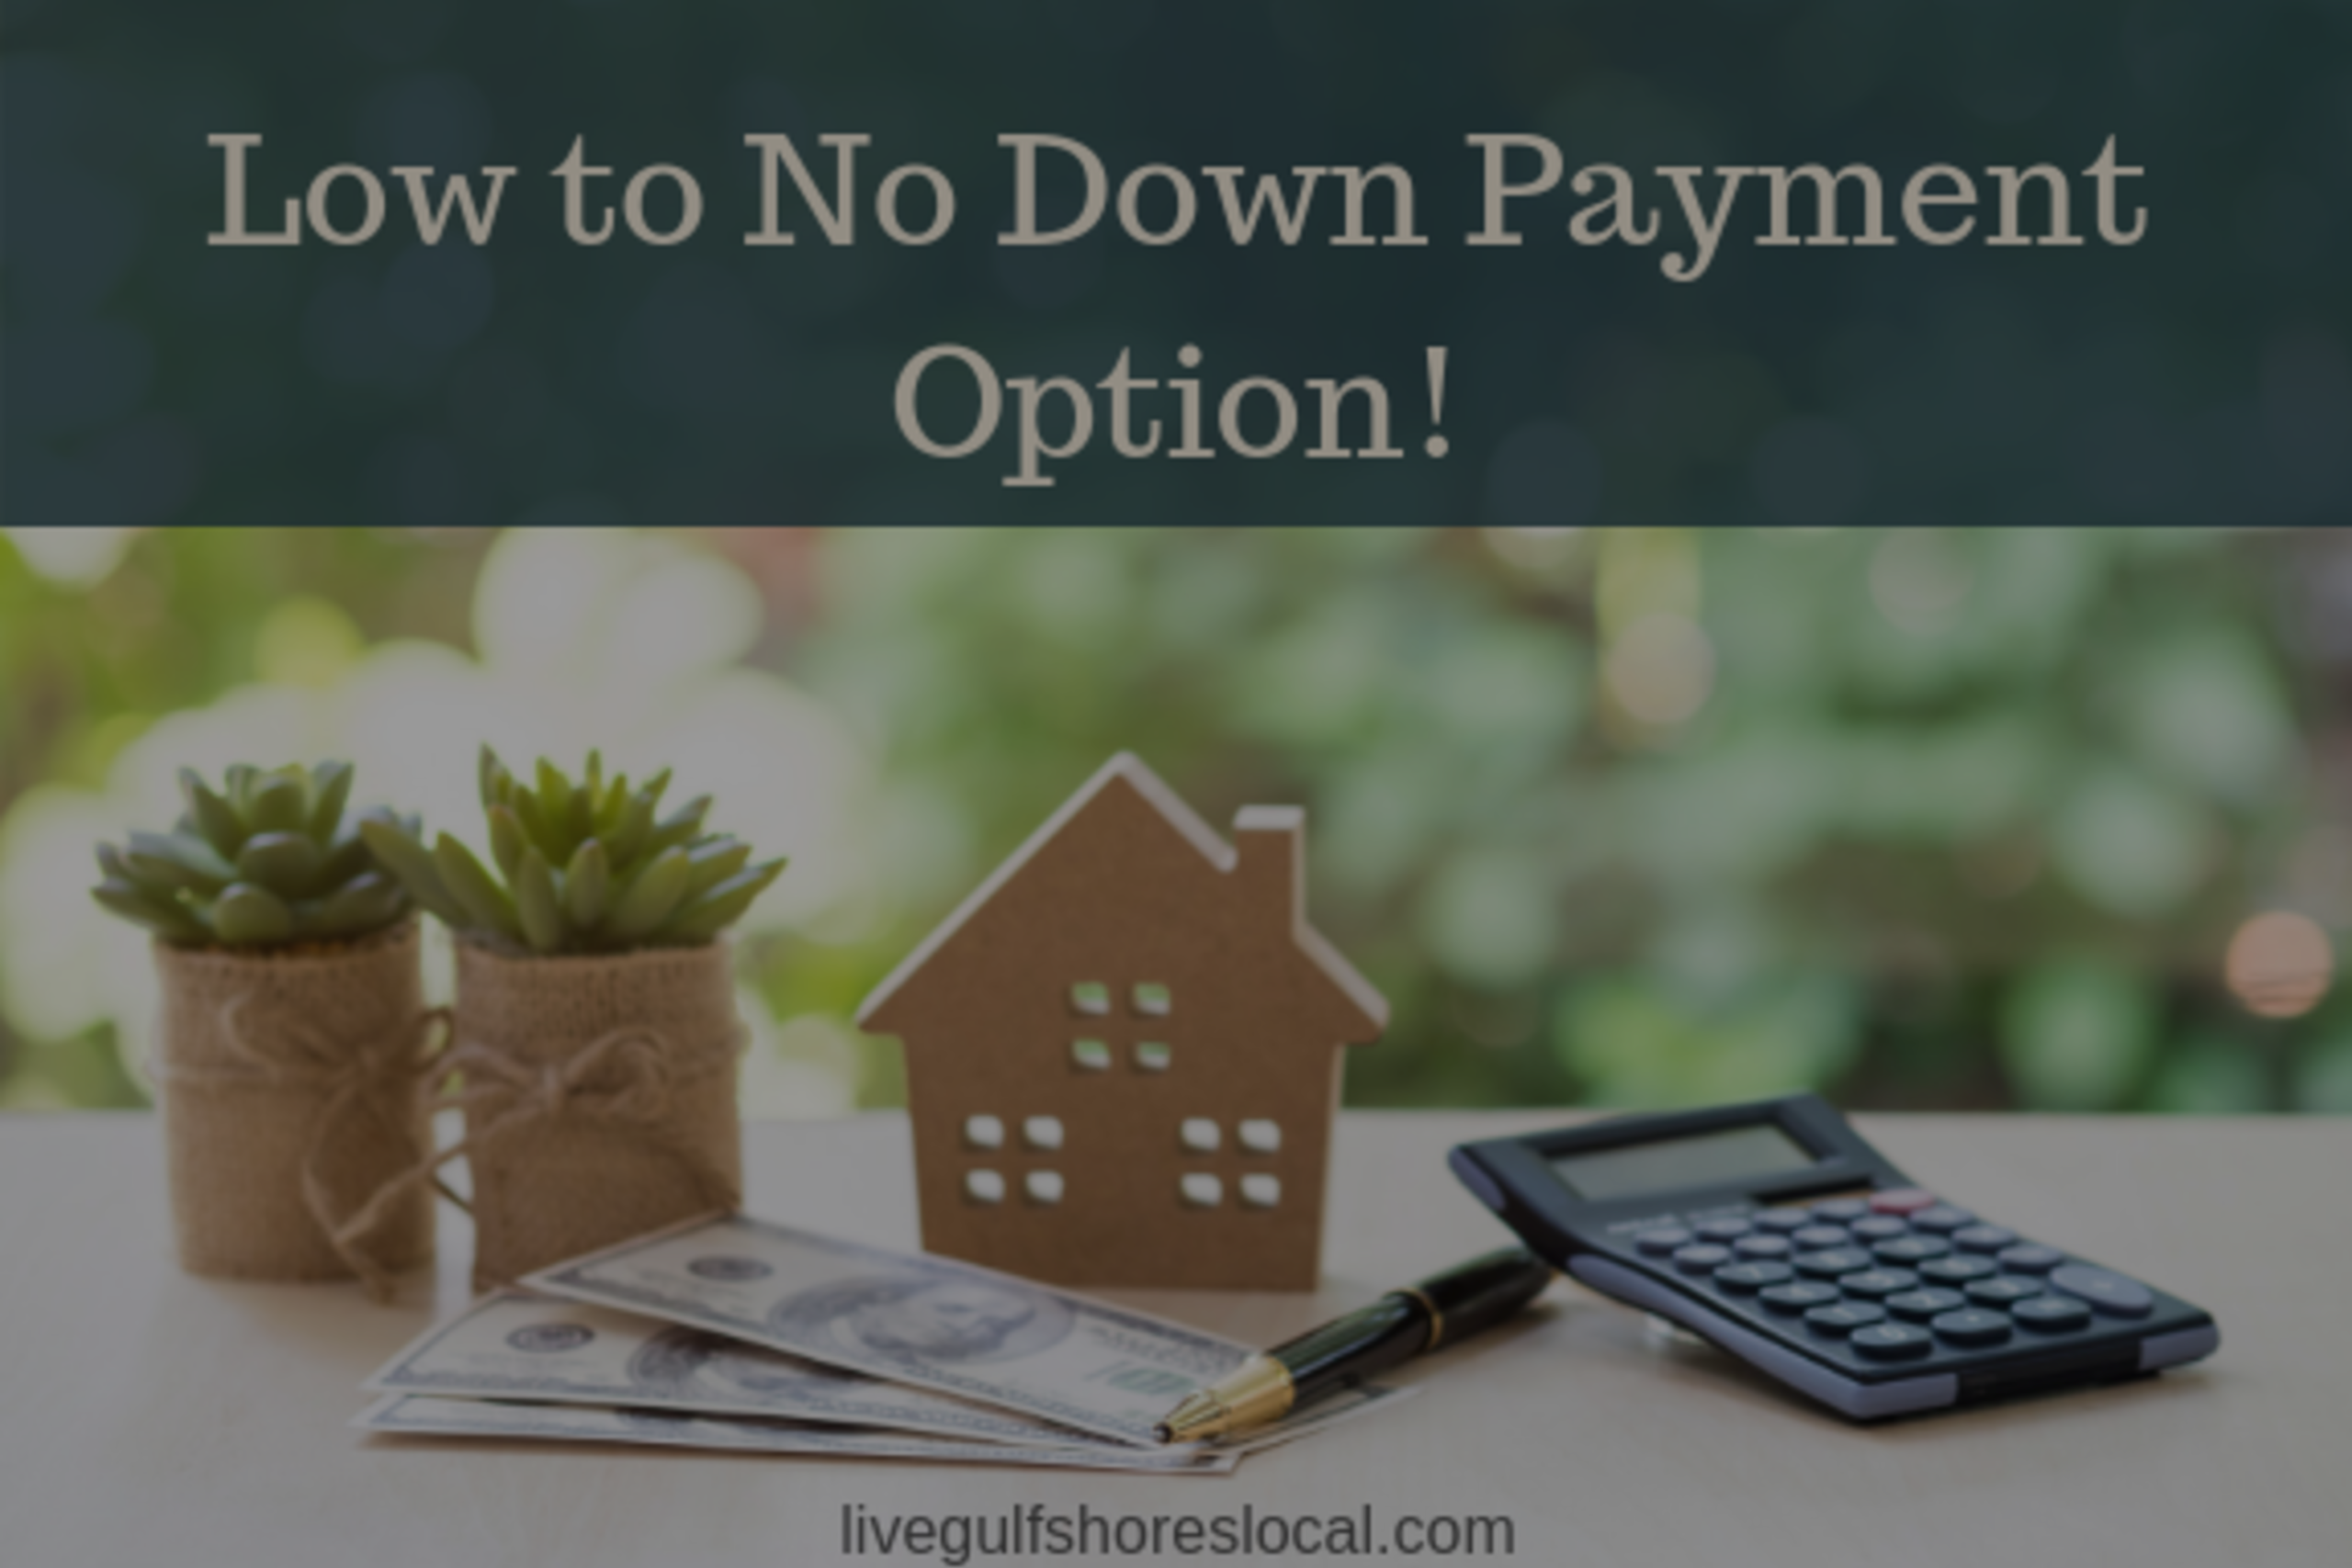 Low to No Down Payment Option